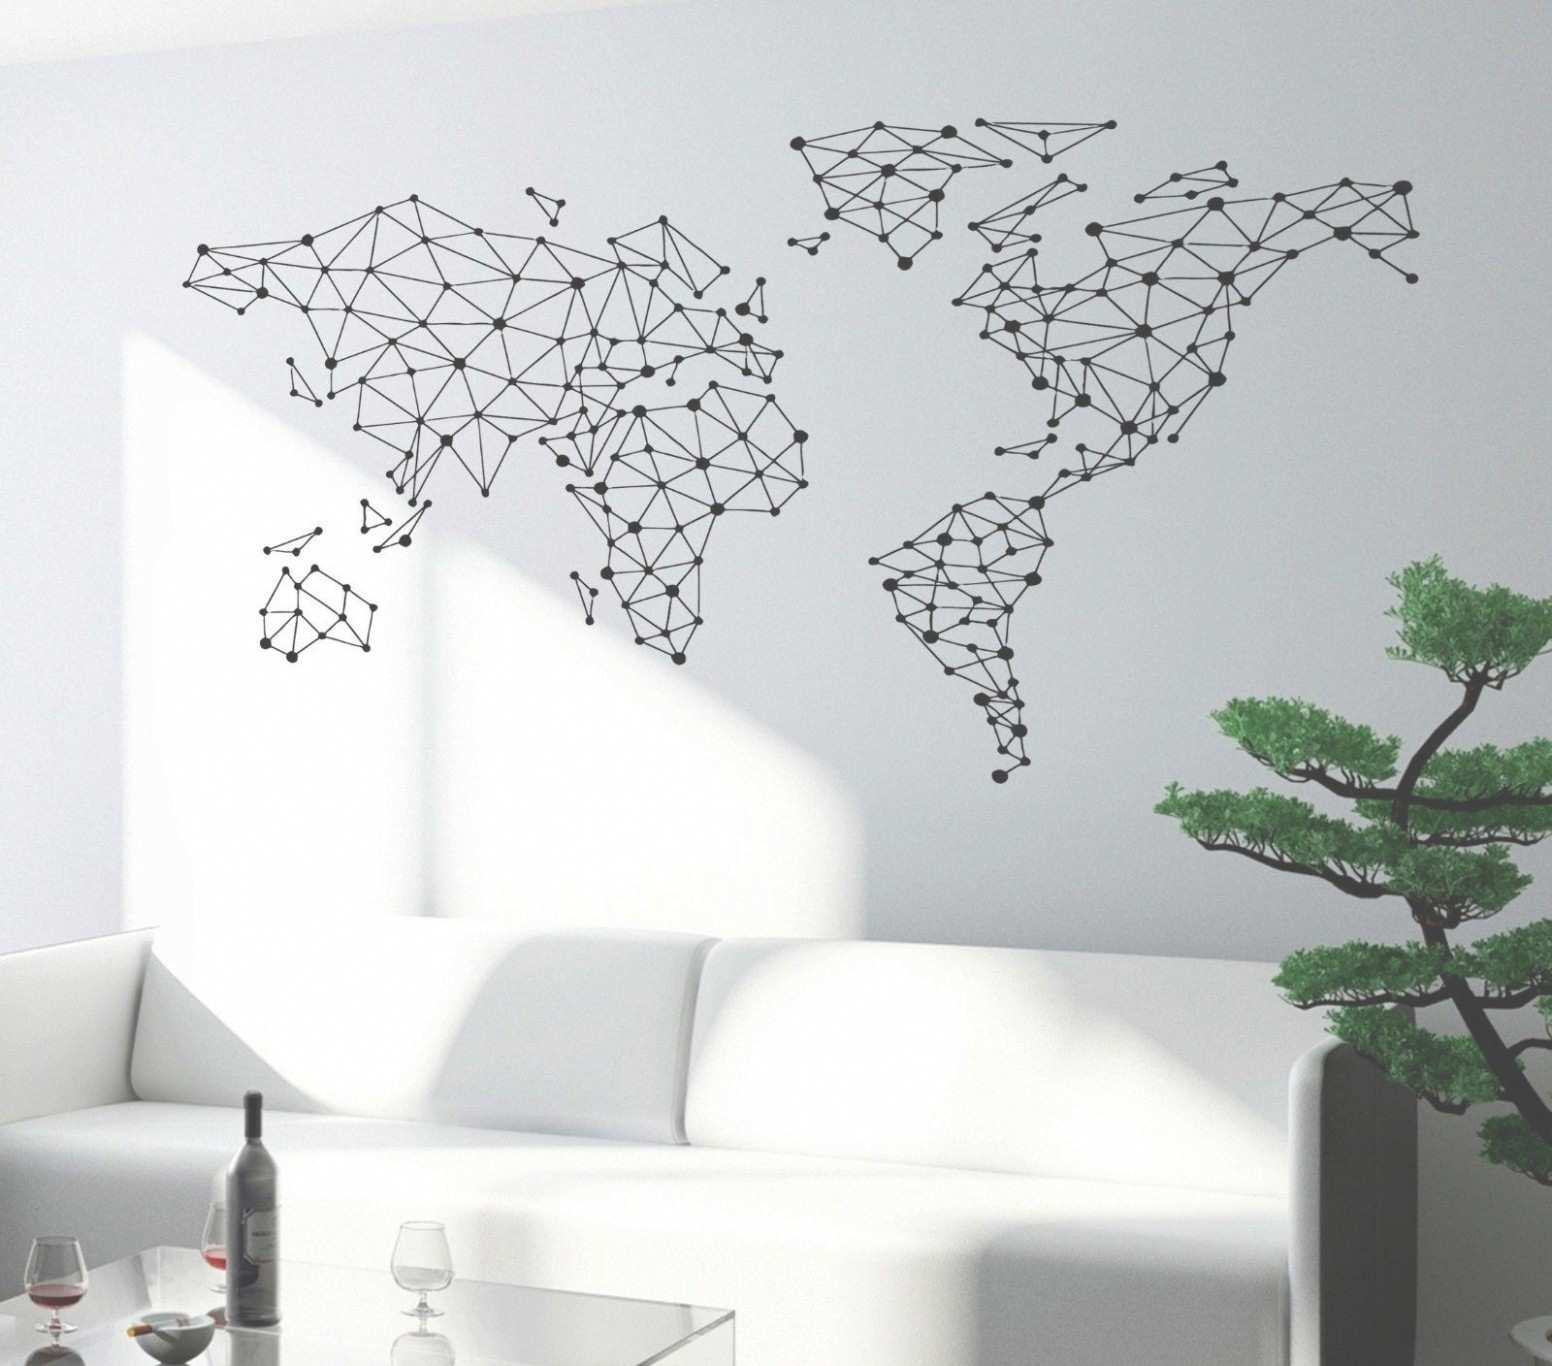 46 Ideas of Wall Art Maps